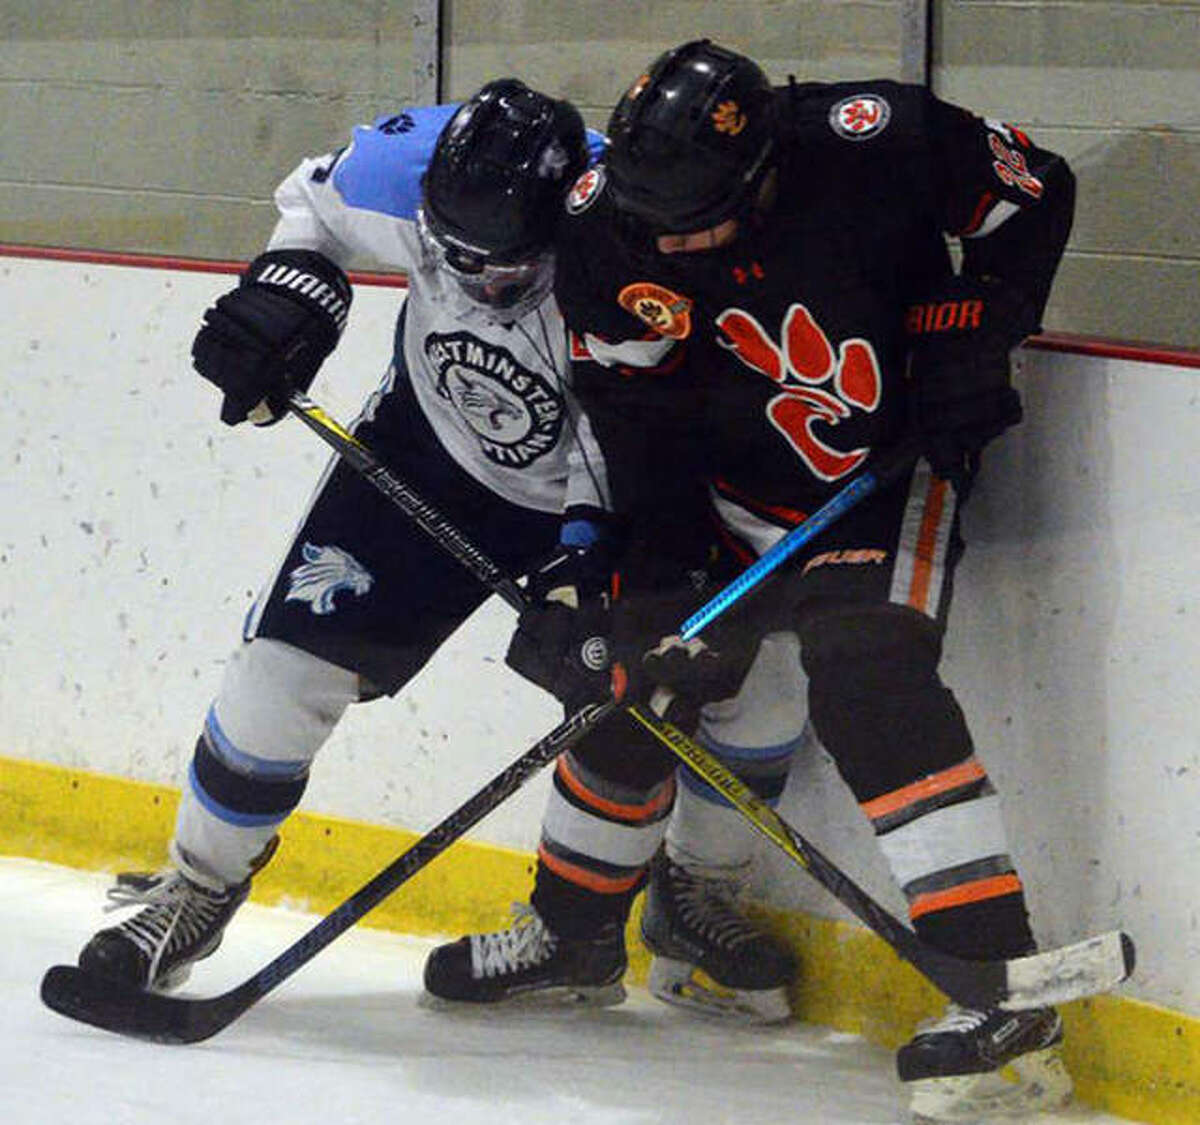 Edwardsville senior Trevor Laub, right, battles for the puck during Friday's game against Westminster at Queeny Recreational Complex.